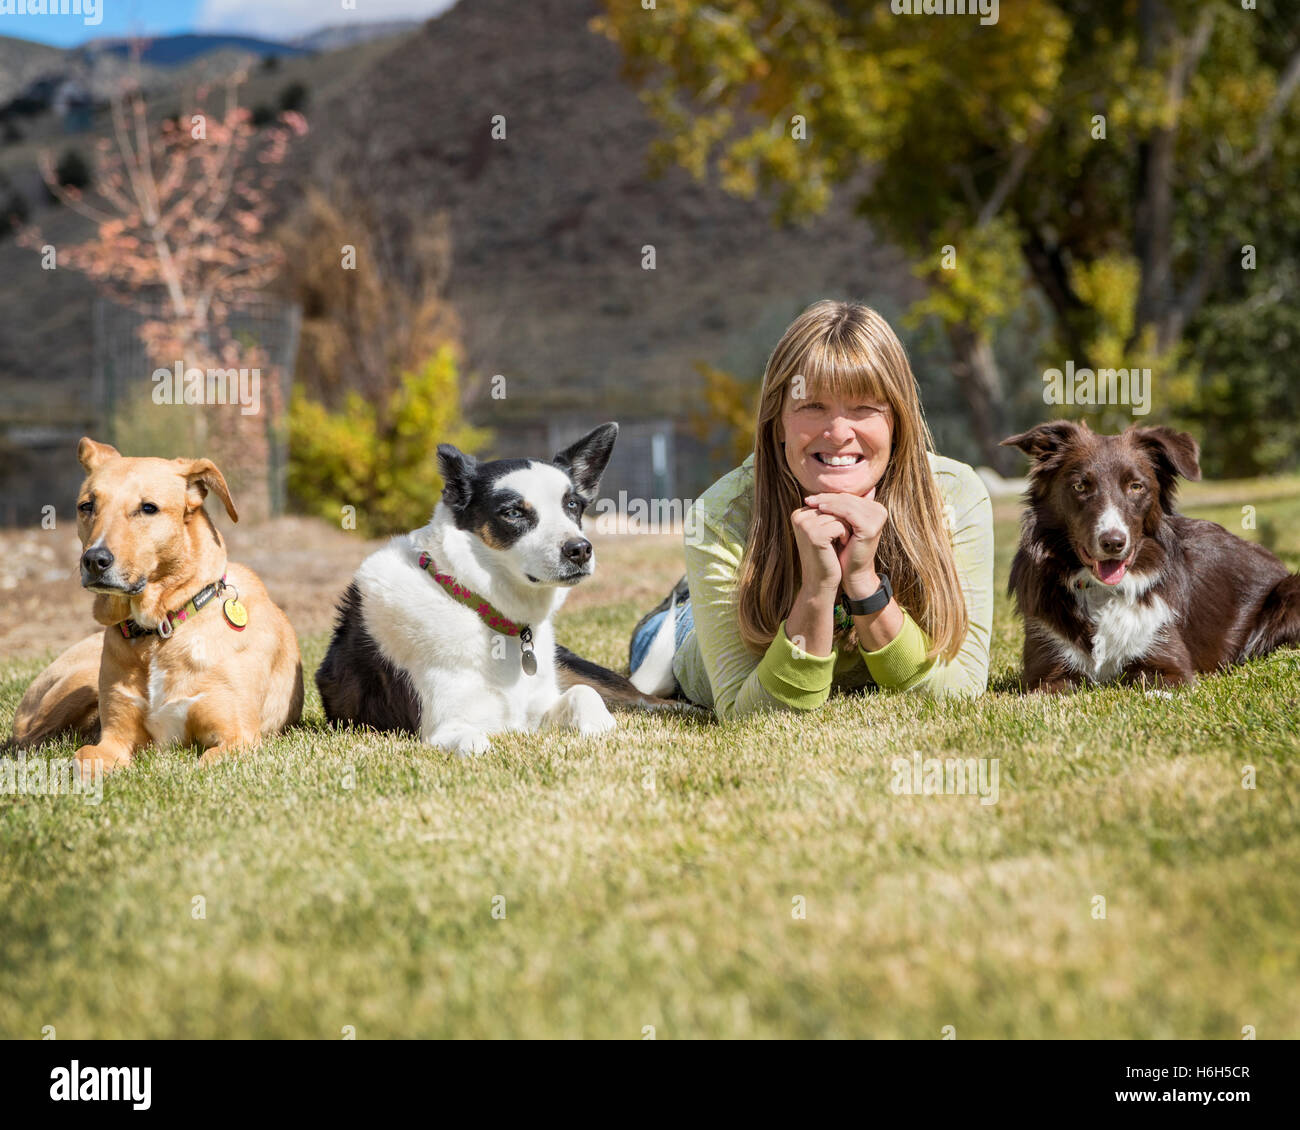 Outdoor portrait of attractive woman with her three dogs on a grassy field - Stock Image